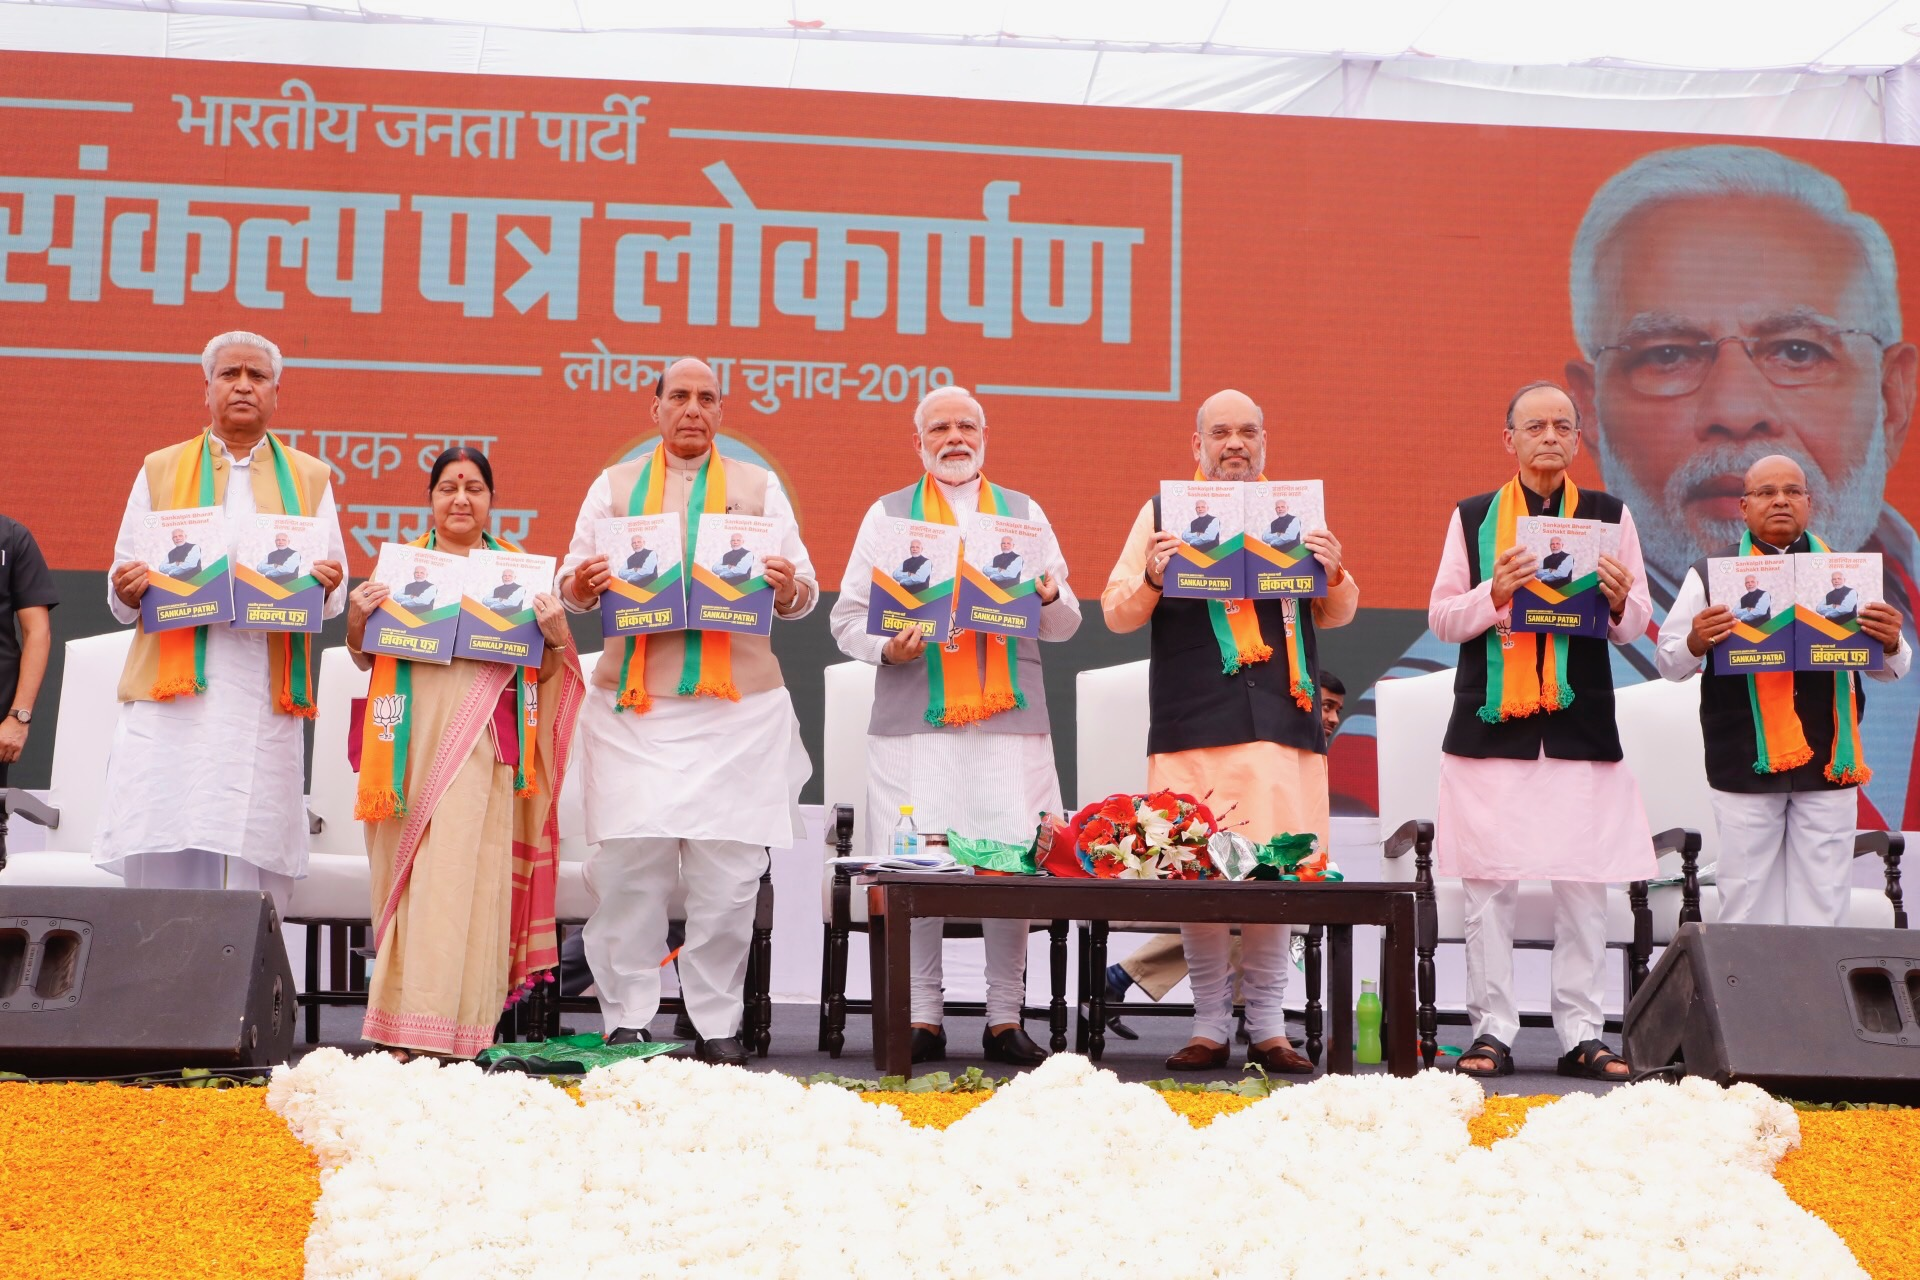 Launch of BJP's